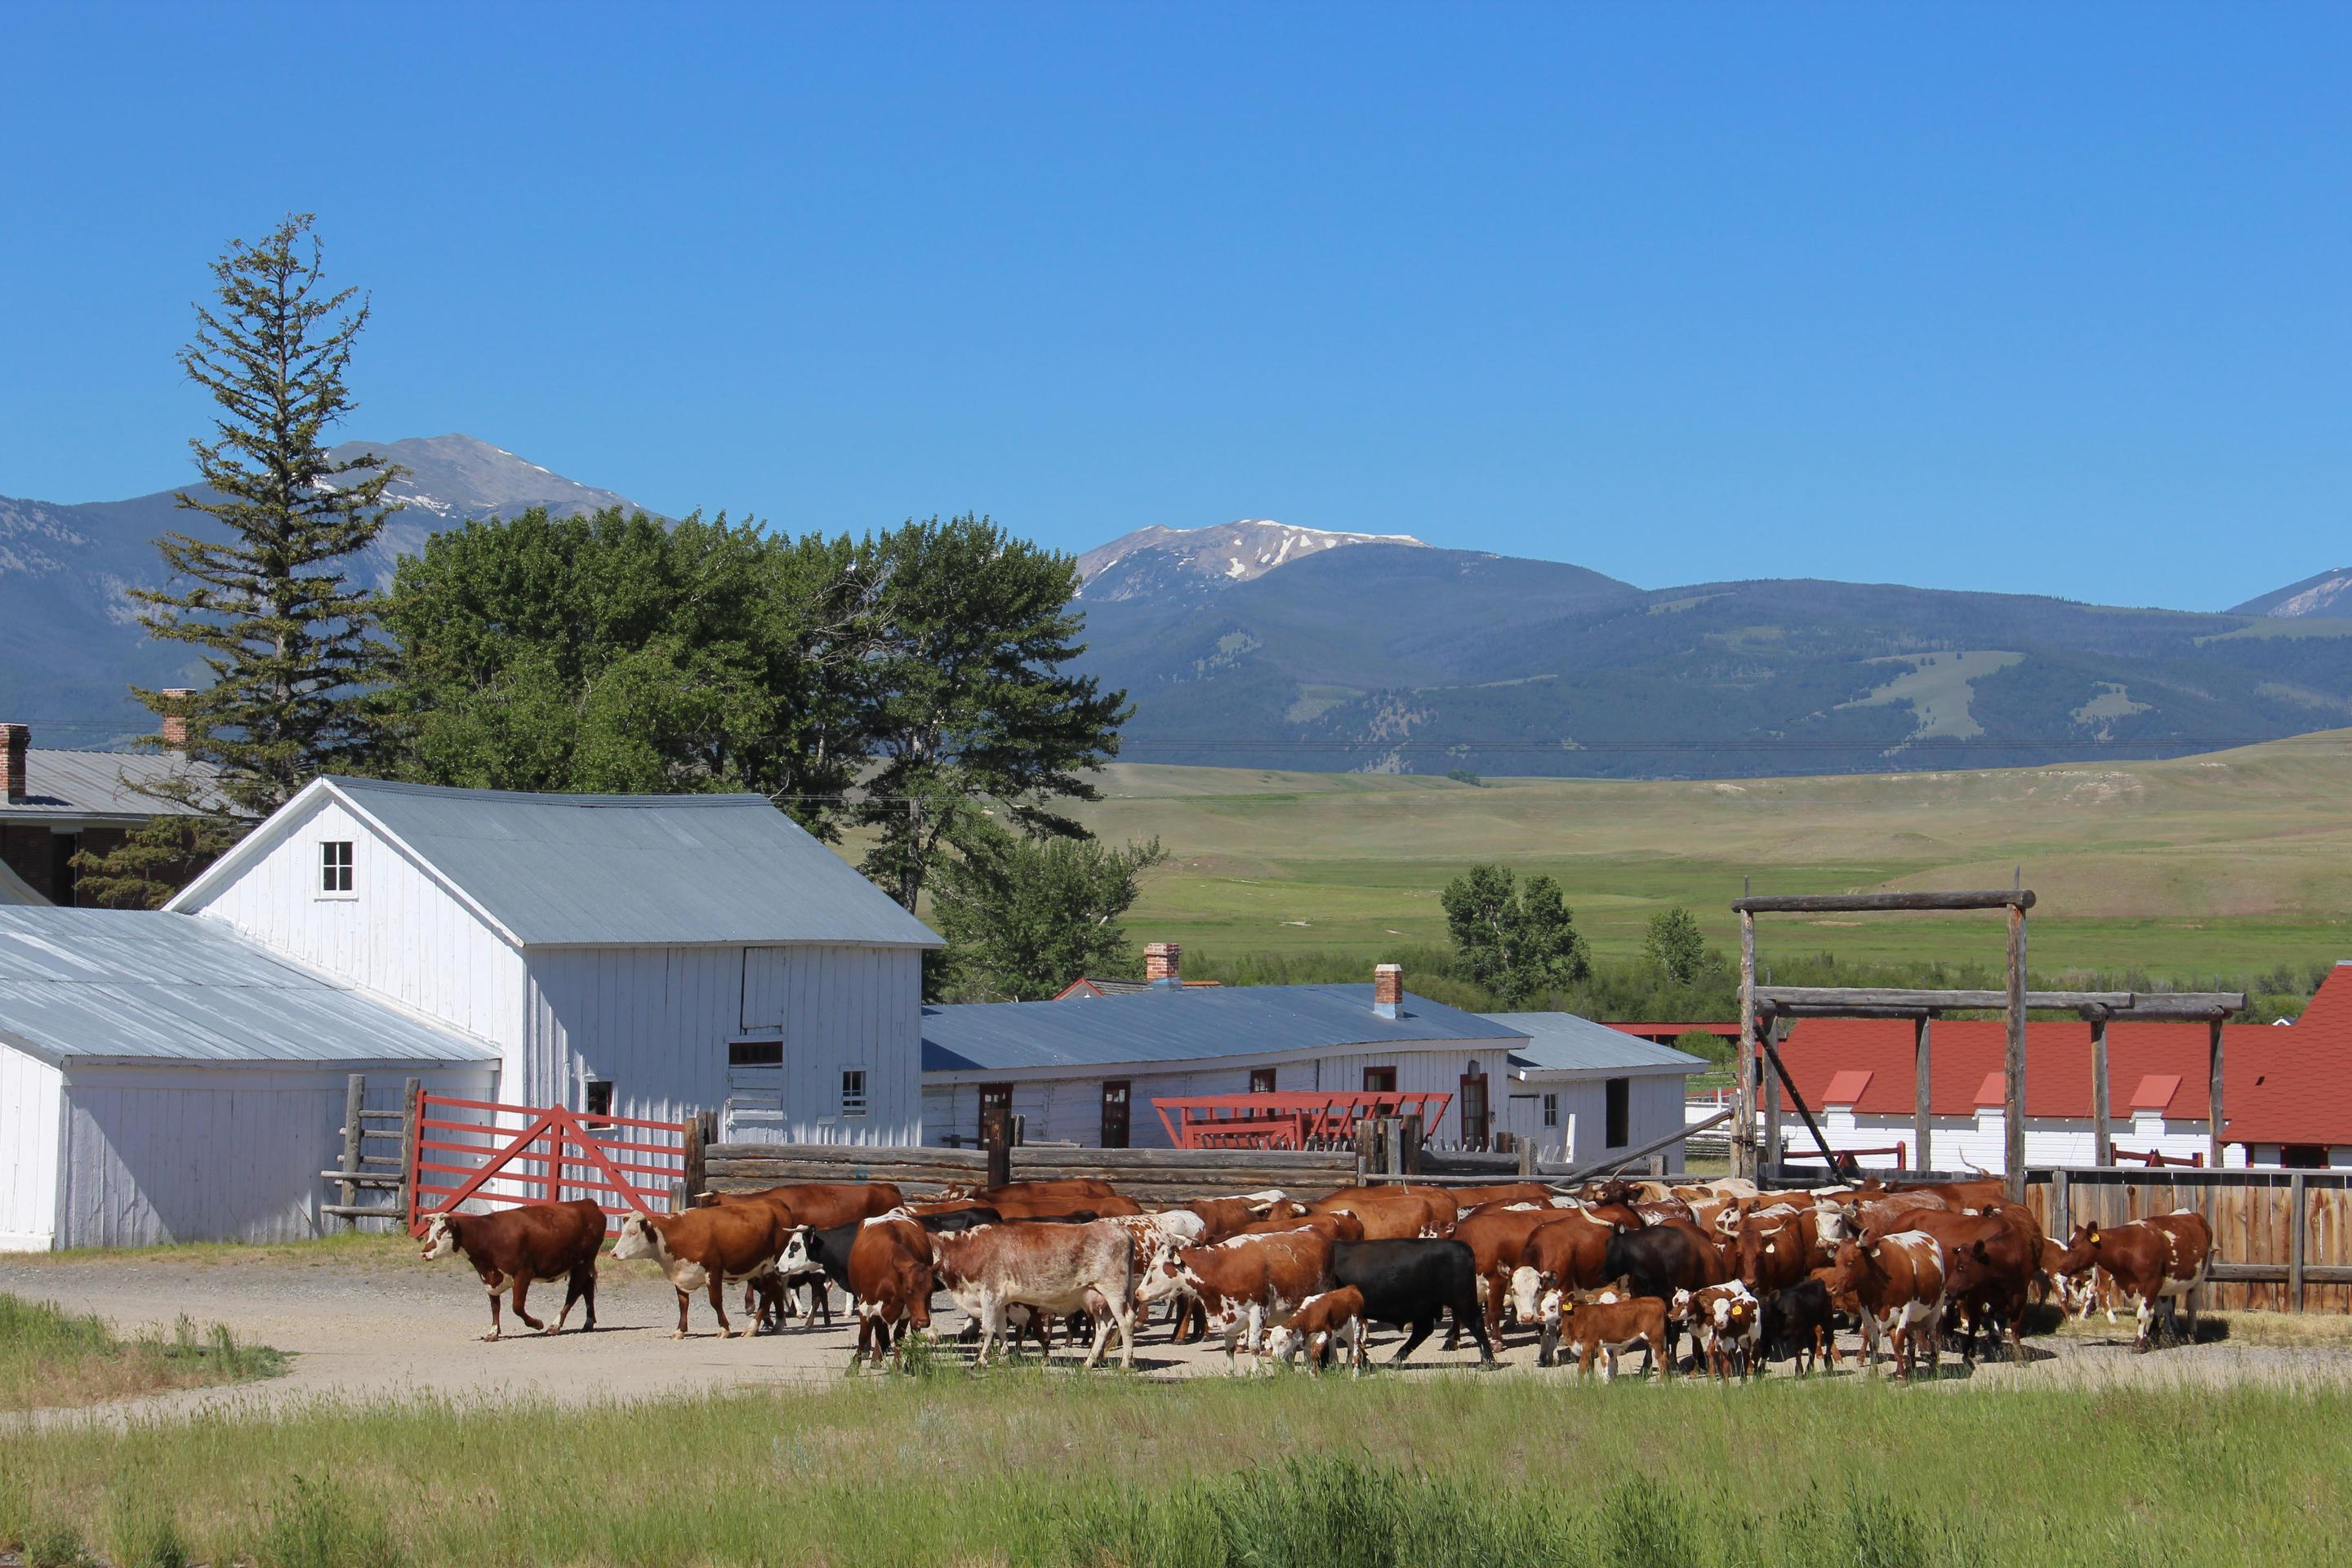 Cattle Herd MovingThe ranch cattle herd contains Hereford, Shorthorn and Texas Longhorn, which were popular breeds during the Open Range Cattle Era